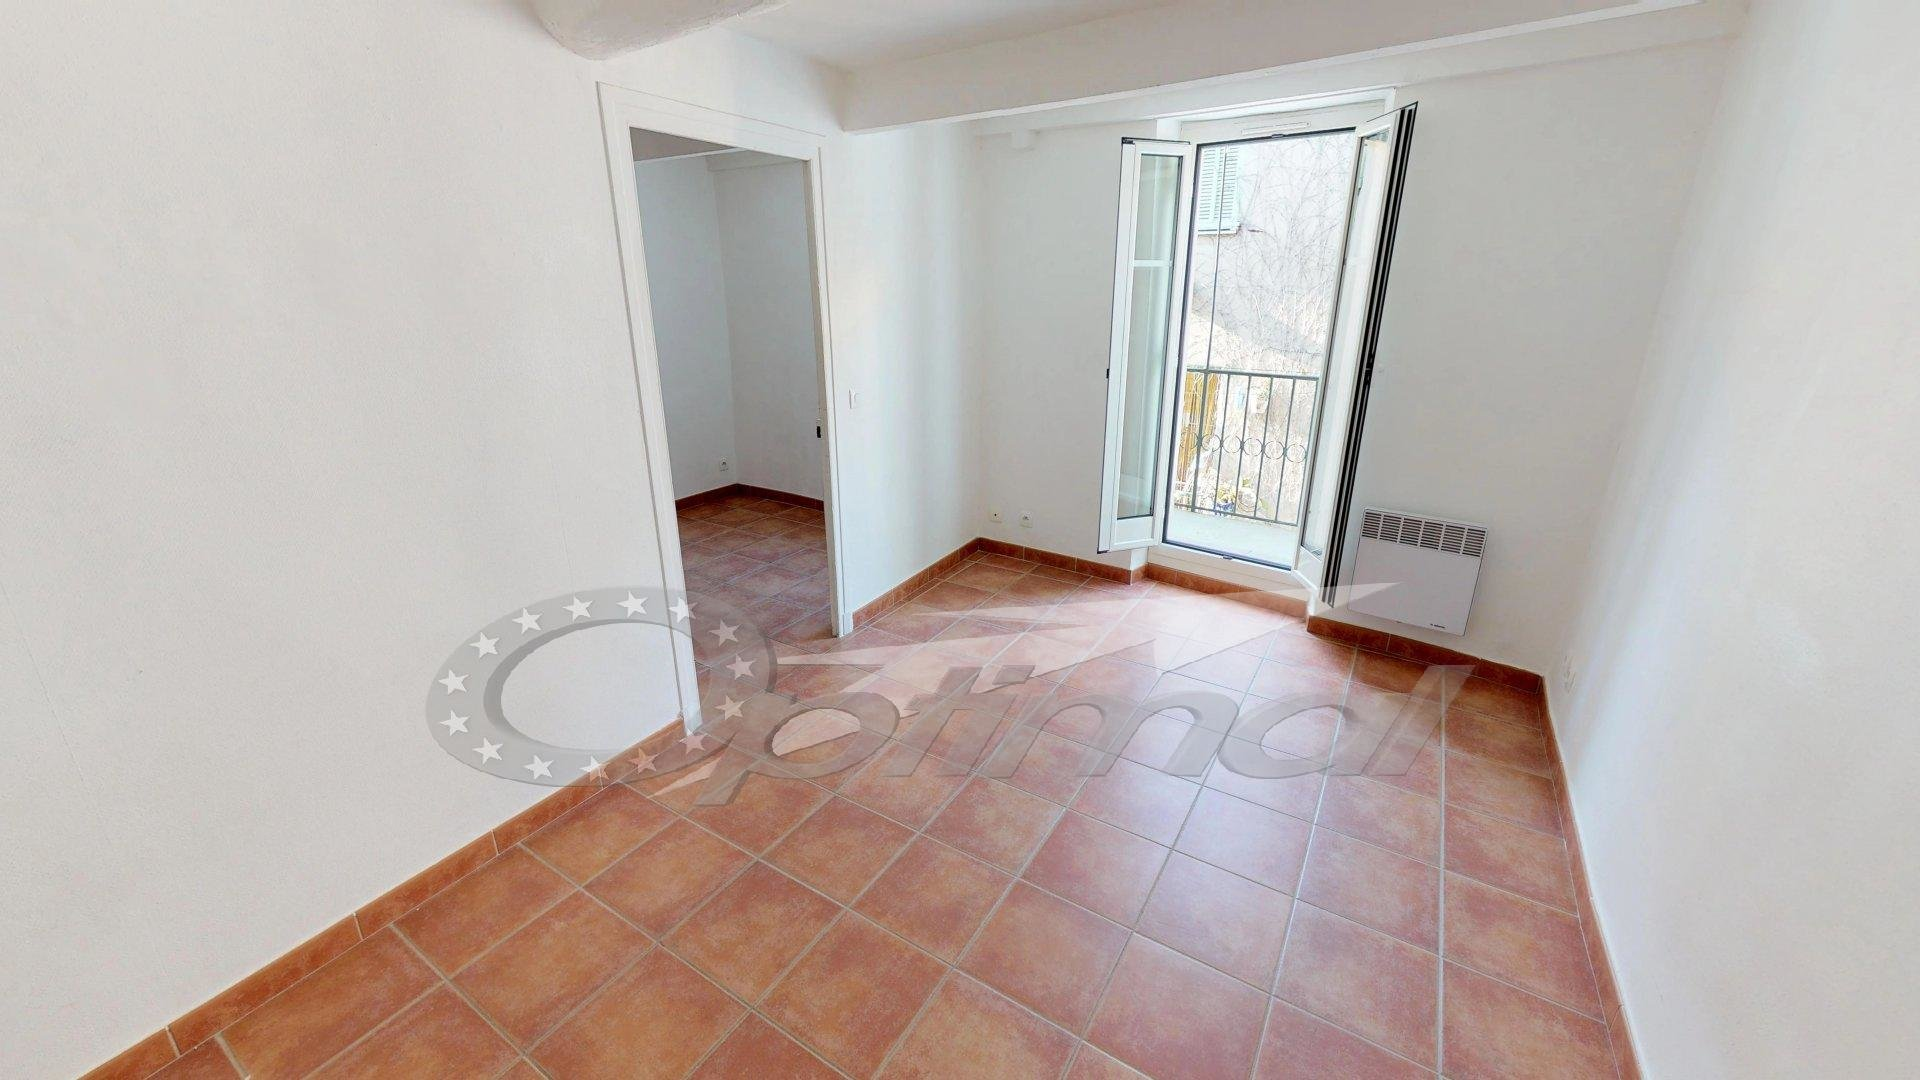 Location Appartement - Castellar